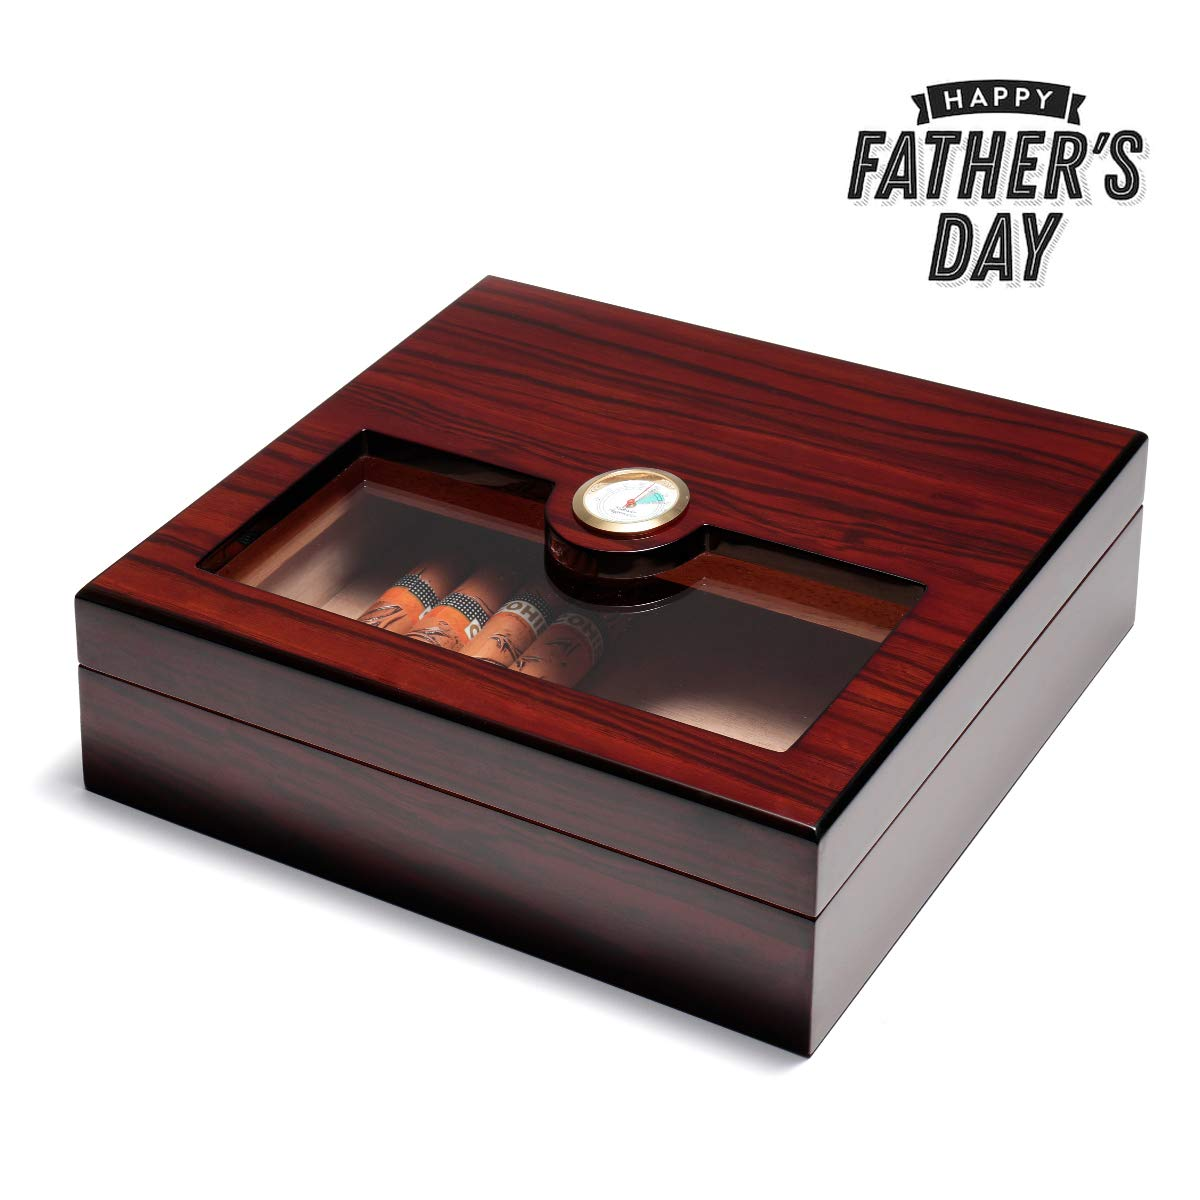 Woodronic Glasstop Cigar Humidor, Rosewood with Spanish Cedar Wood Lined for 25 Cigars, Perfect Desktop Display Cigar Box Set with Hygrometer and Humidifier, H-5027RW